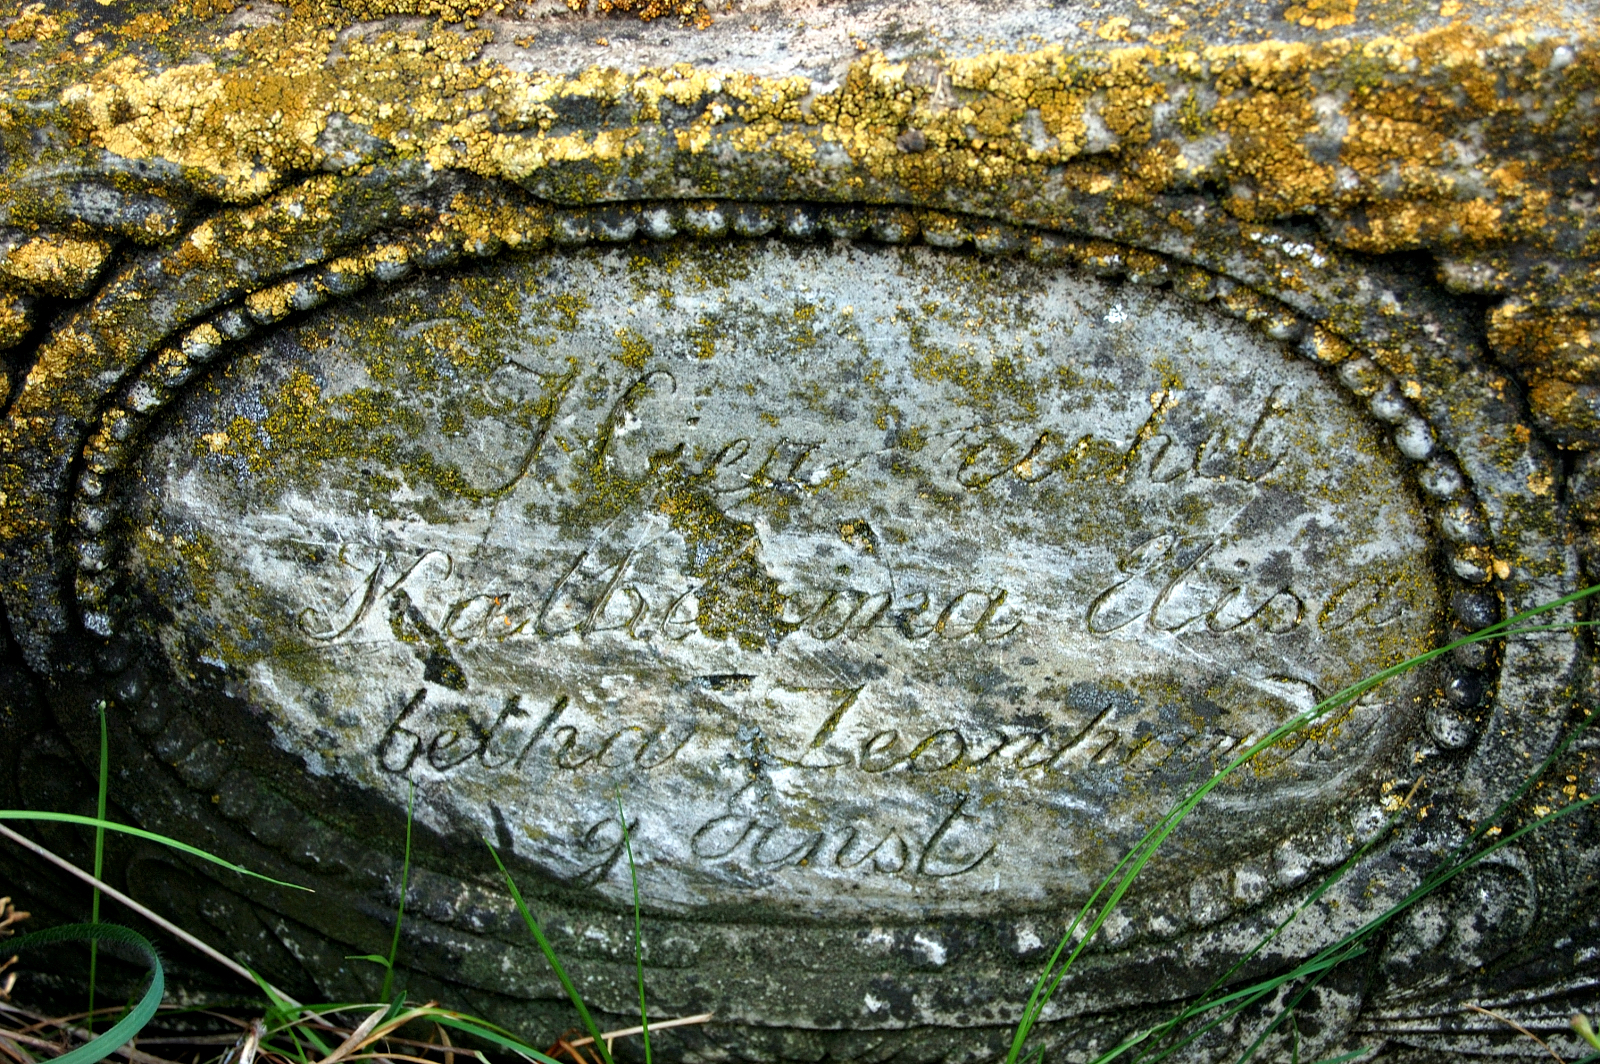 "Inscription on the headstone reads: ""Here rests Katherina Elisabetha Leonhardt, born Ernst"". Courtesy of Steve Schreiber (2006)."